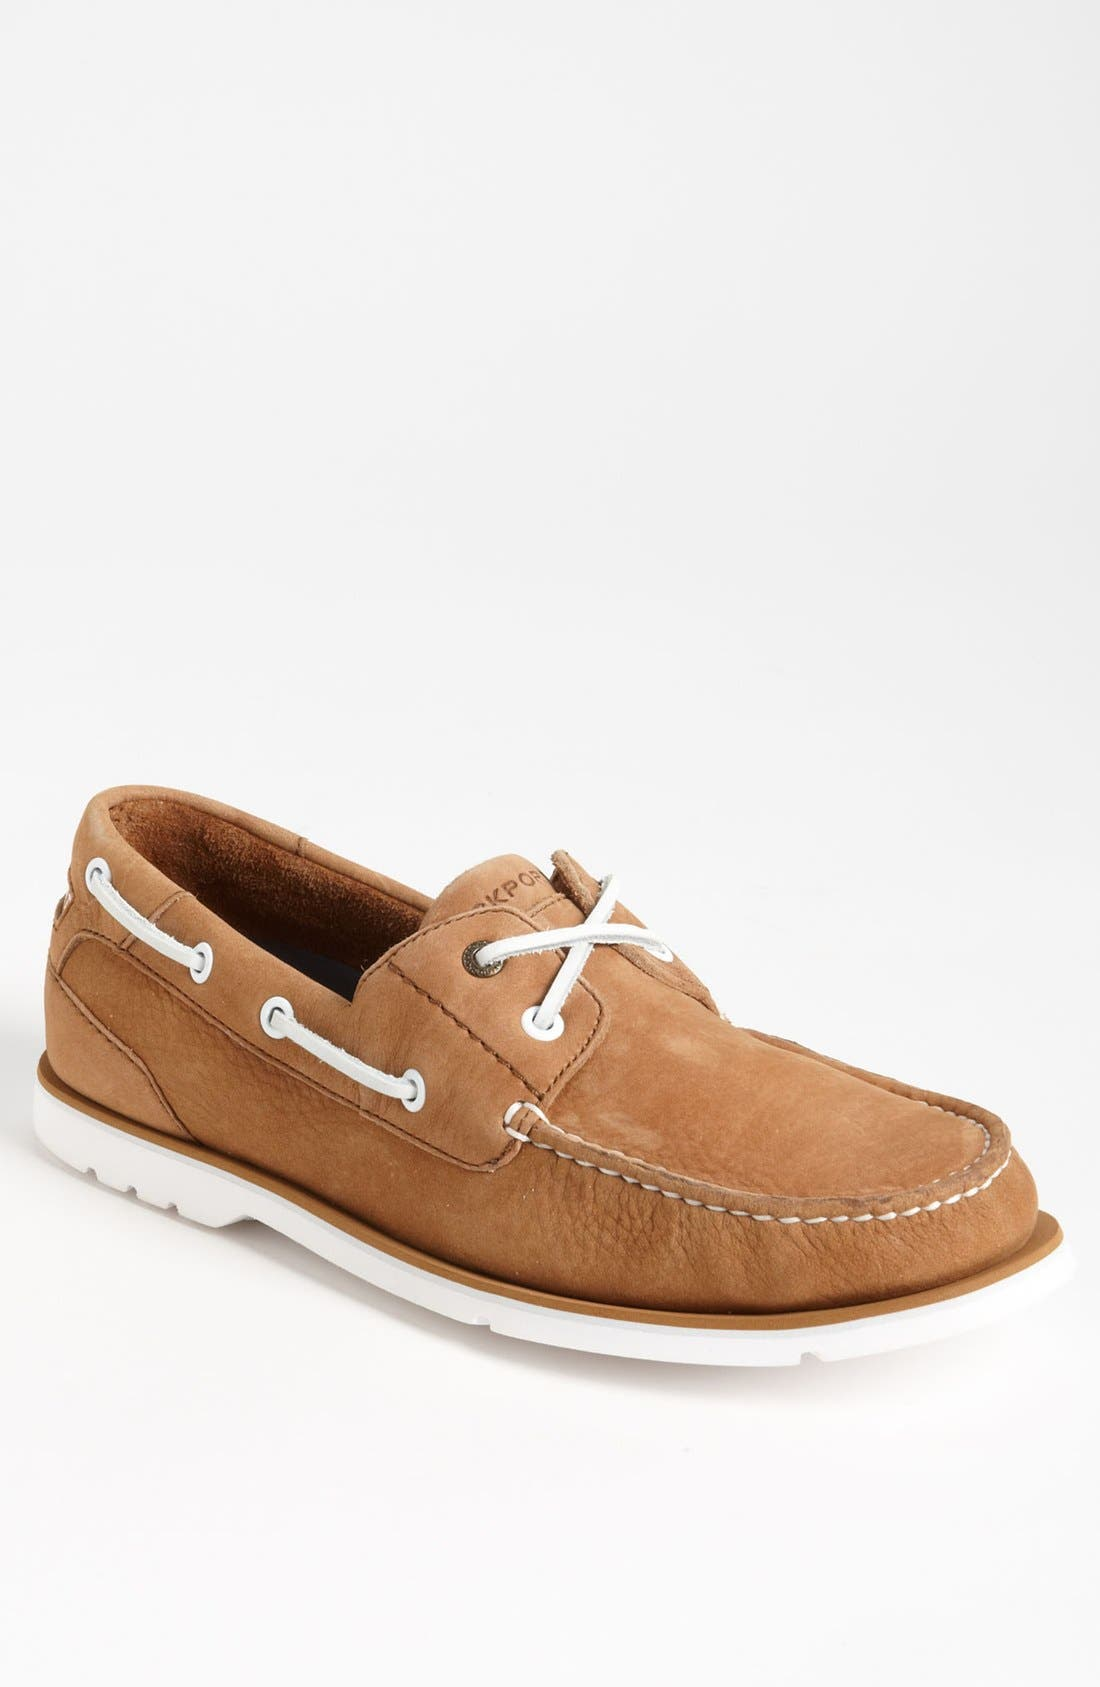 Main Image - Rockport 'Summer Tour' Boat Shoe